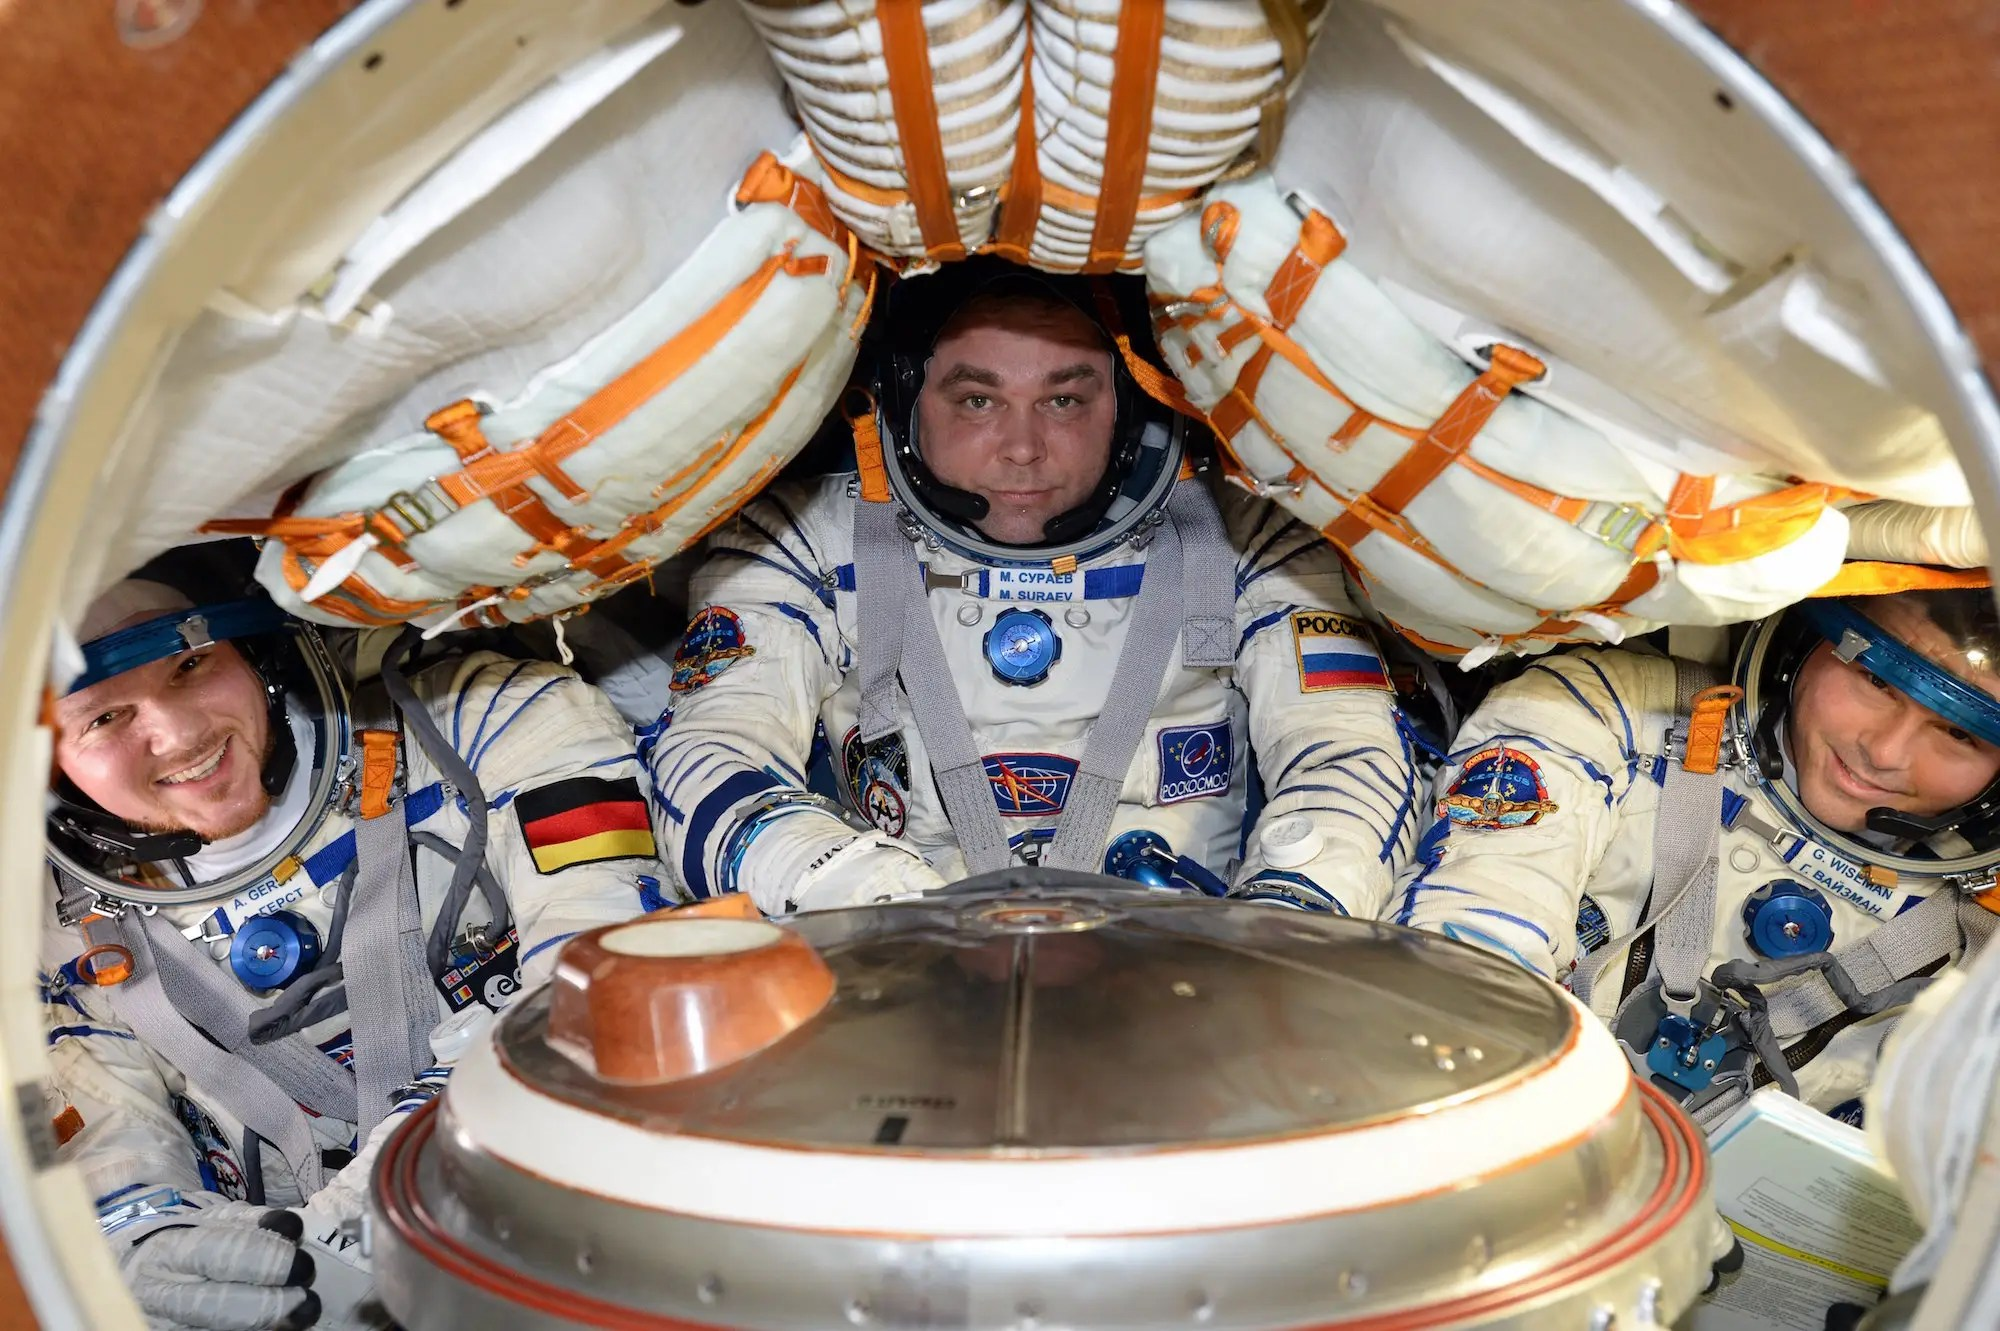 Astronauts And A Cosmonaut Buckled Into Cramped Soyuz Descent Module Make For Very Tight Fit ESA NASA